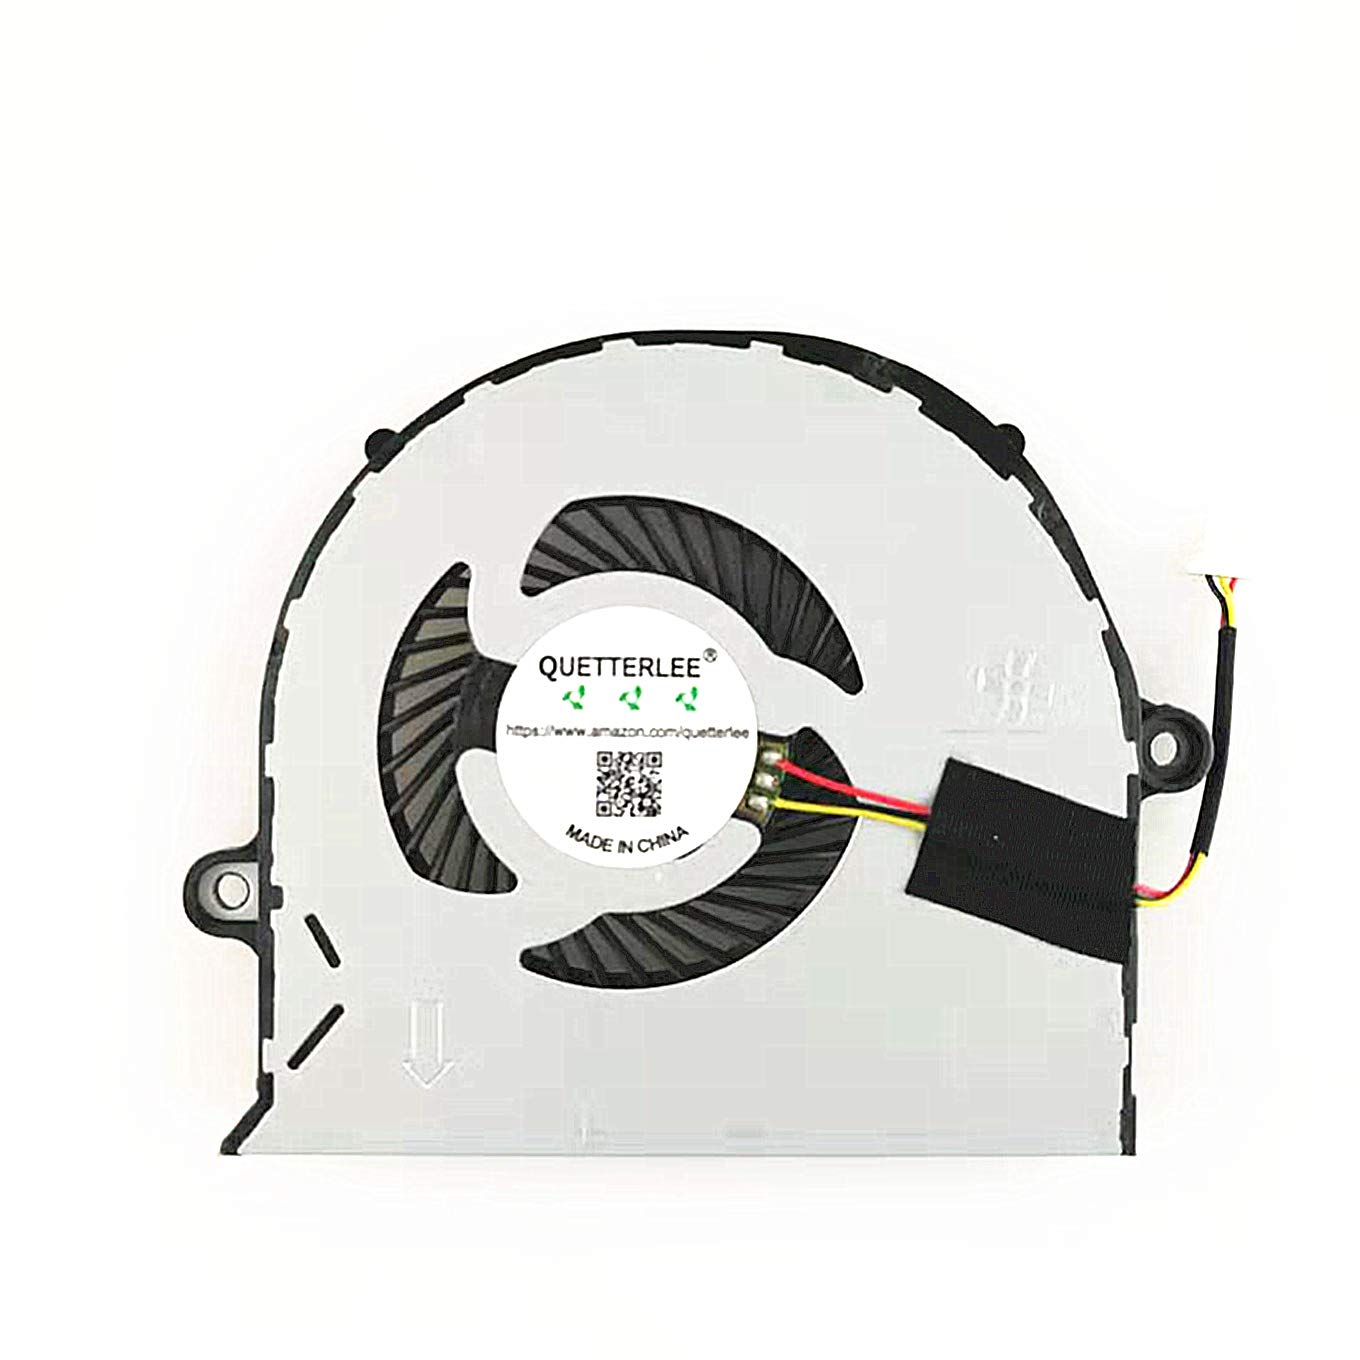 New Laptop CPU Cooling Fan for Acer Aspire E5-571 E5-571G E5-571P E5-571PG E5-511 E5-511G E5-511P E5-521 E5-521G E5-531 E5-551 E5-551G V3-572 F5-571 F5-572 F5-573 EF75070S1-C120-G99 DC28000ERS0 FAN